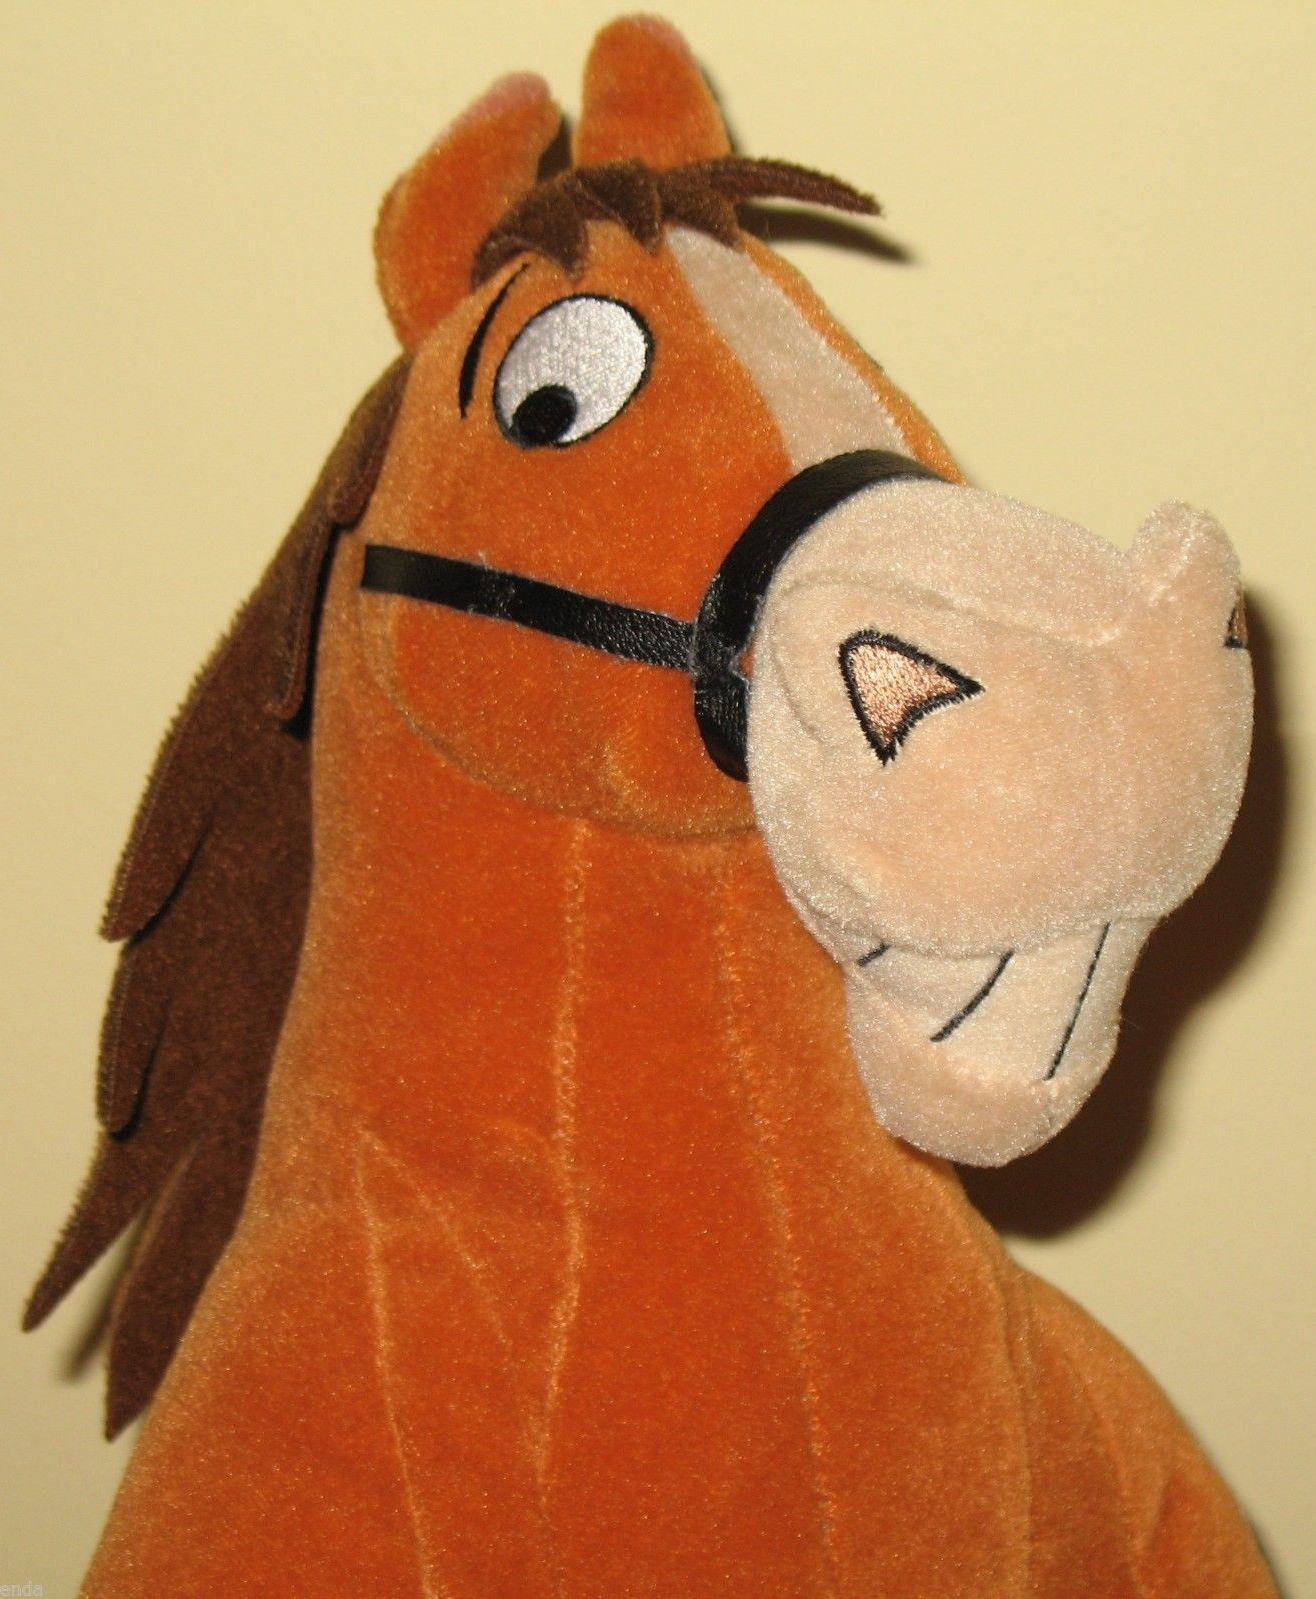 Disney Store Home On The Range Plush Buck Toy 19 95 With Free Shipping And Handling Movie Gift Disney Store Disney Home